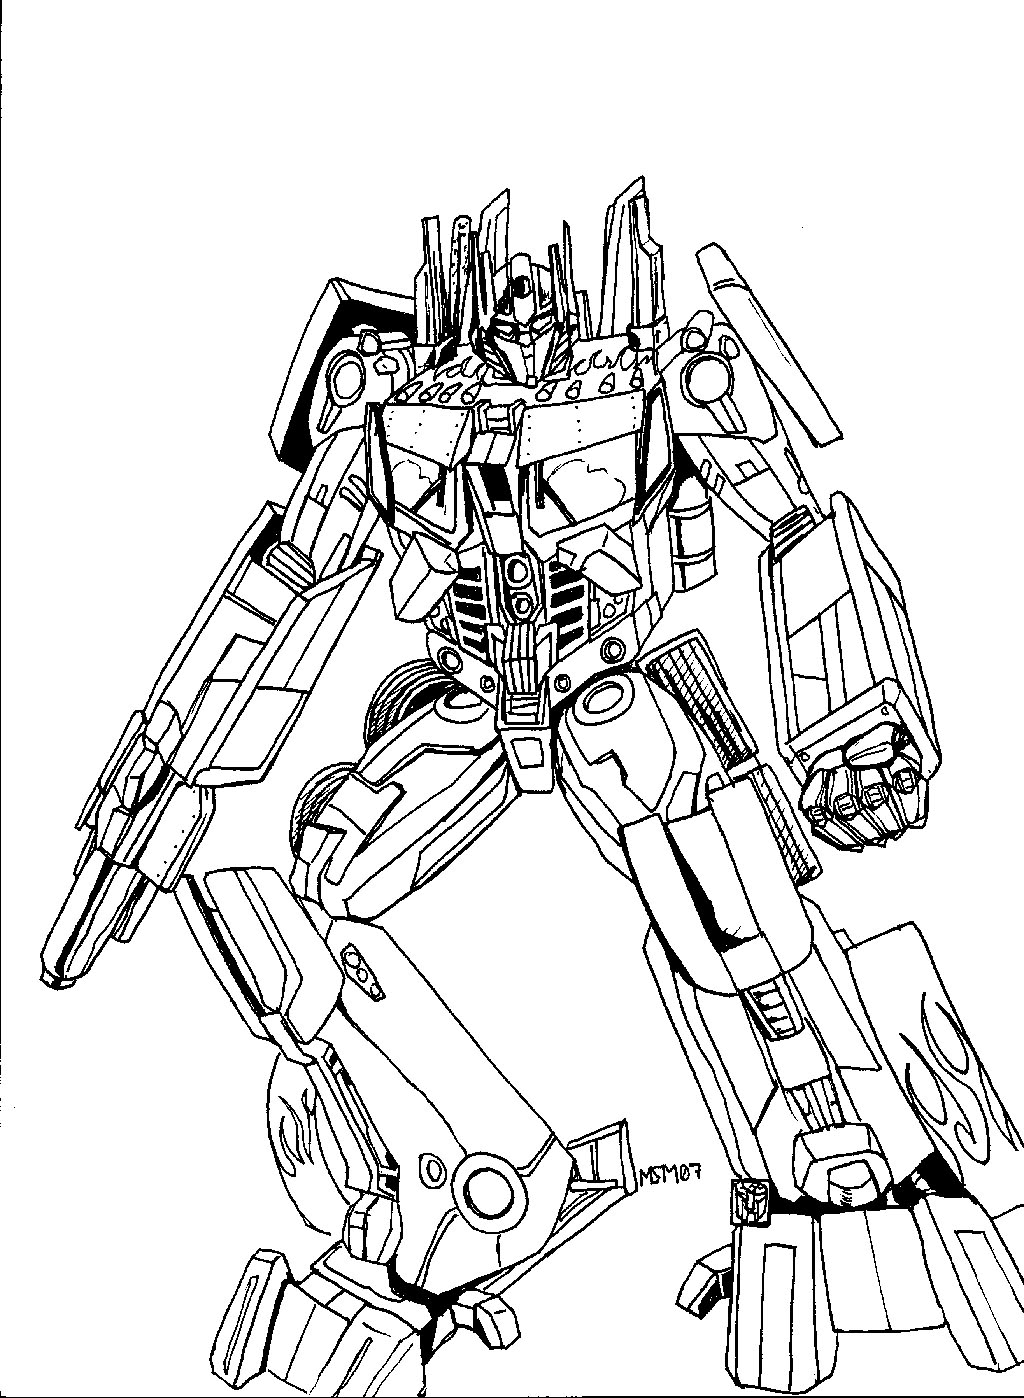 picture regarding Transformers Printable Coloring Pages titled Totally free Printable Transformers Coloring Internet pages For Young children